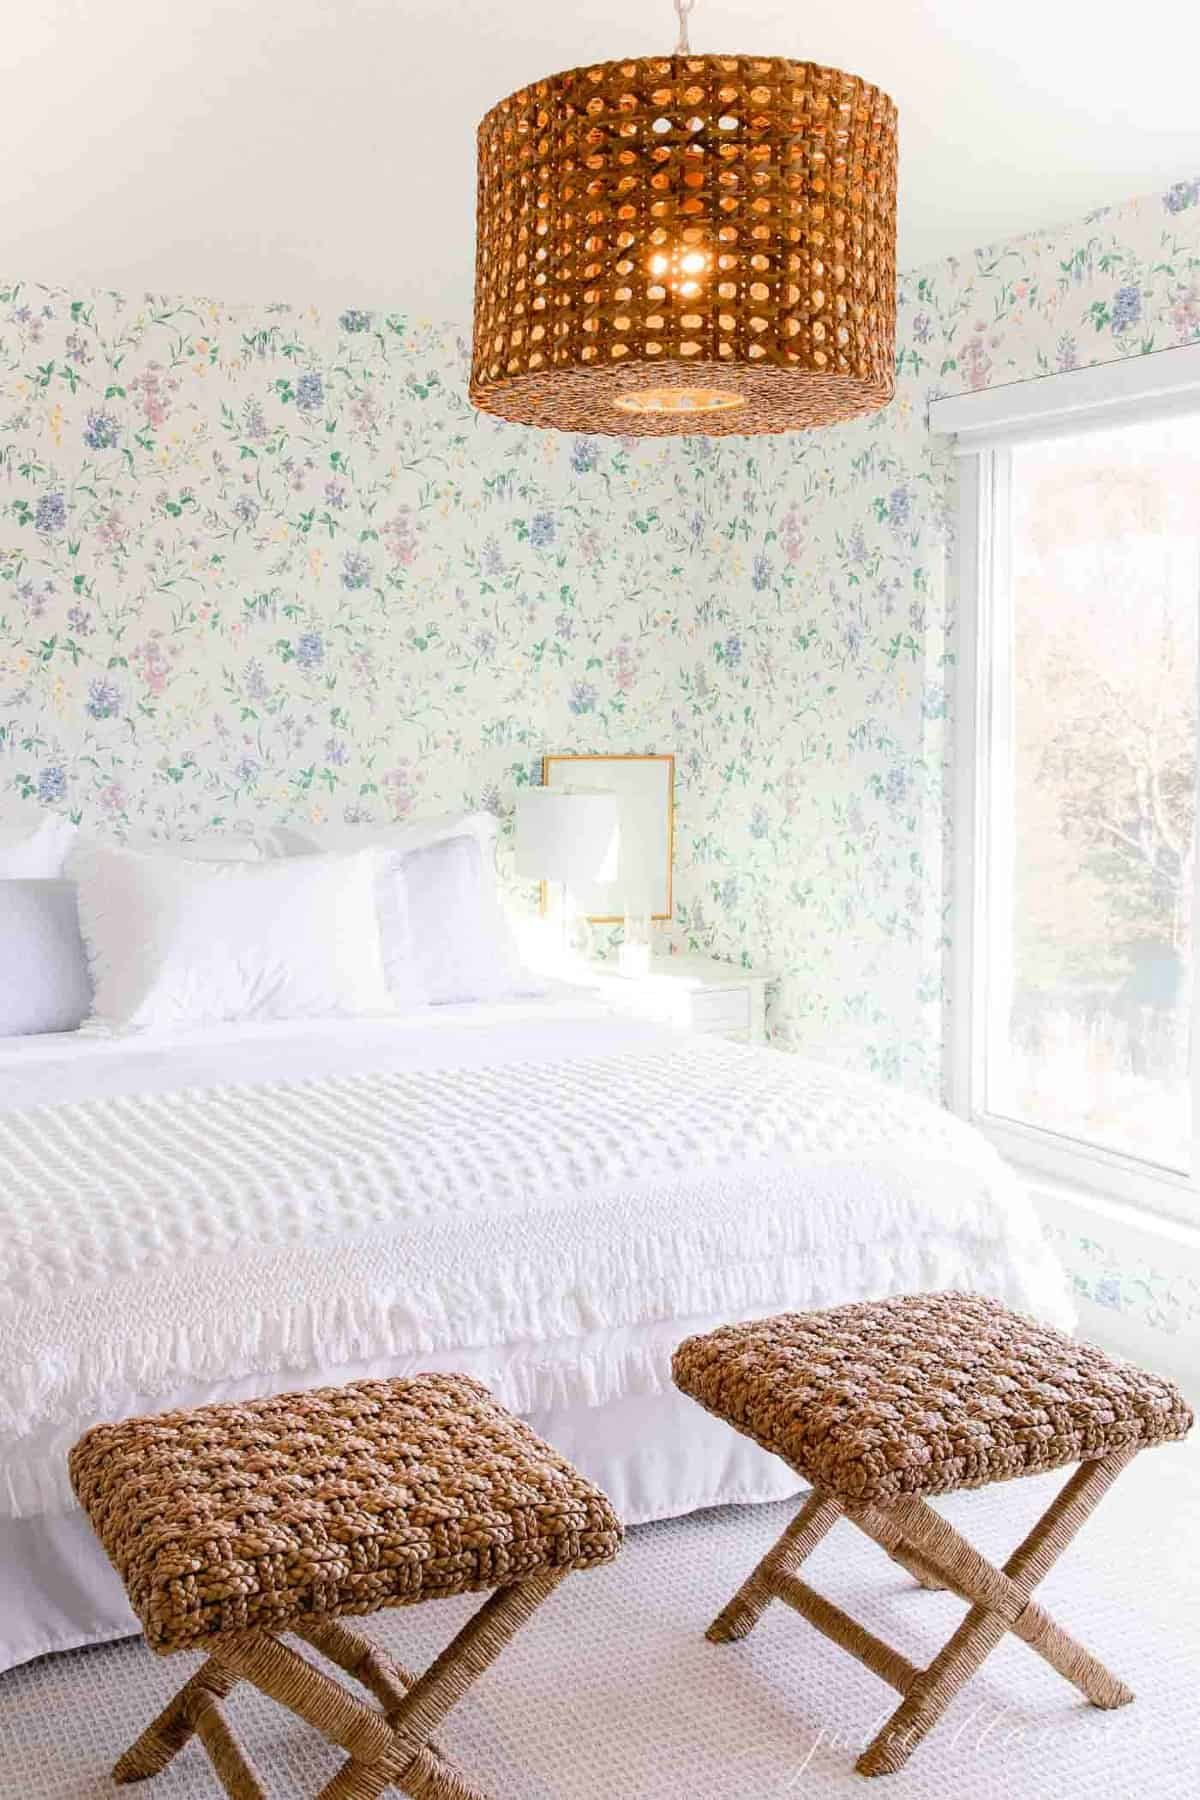 A cottage bedroom with white bedding, floral wallpaper, and a big window with a blackout shade.